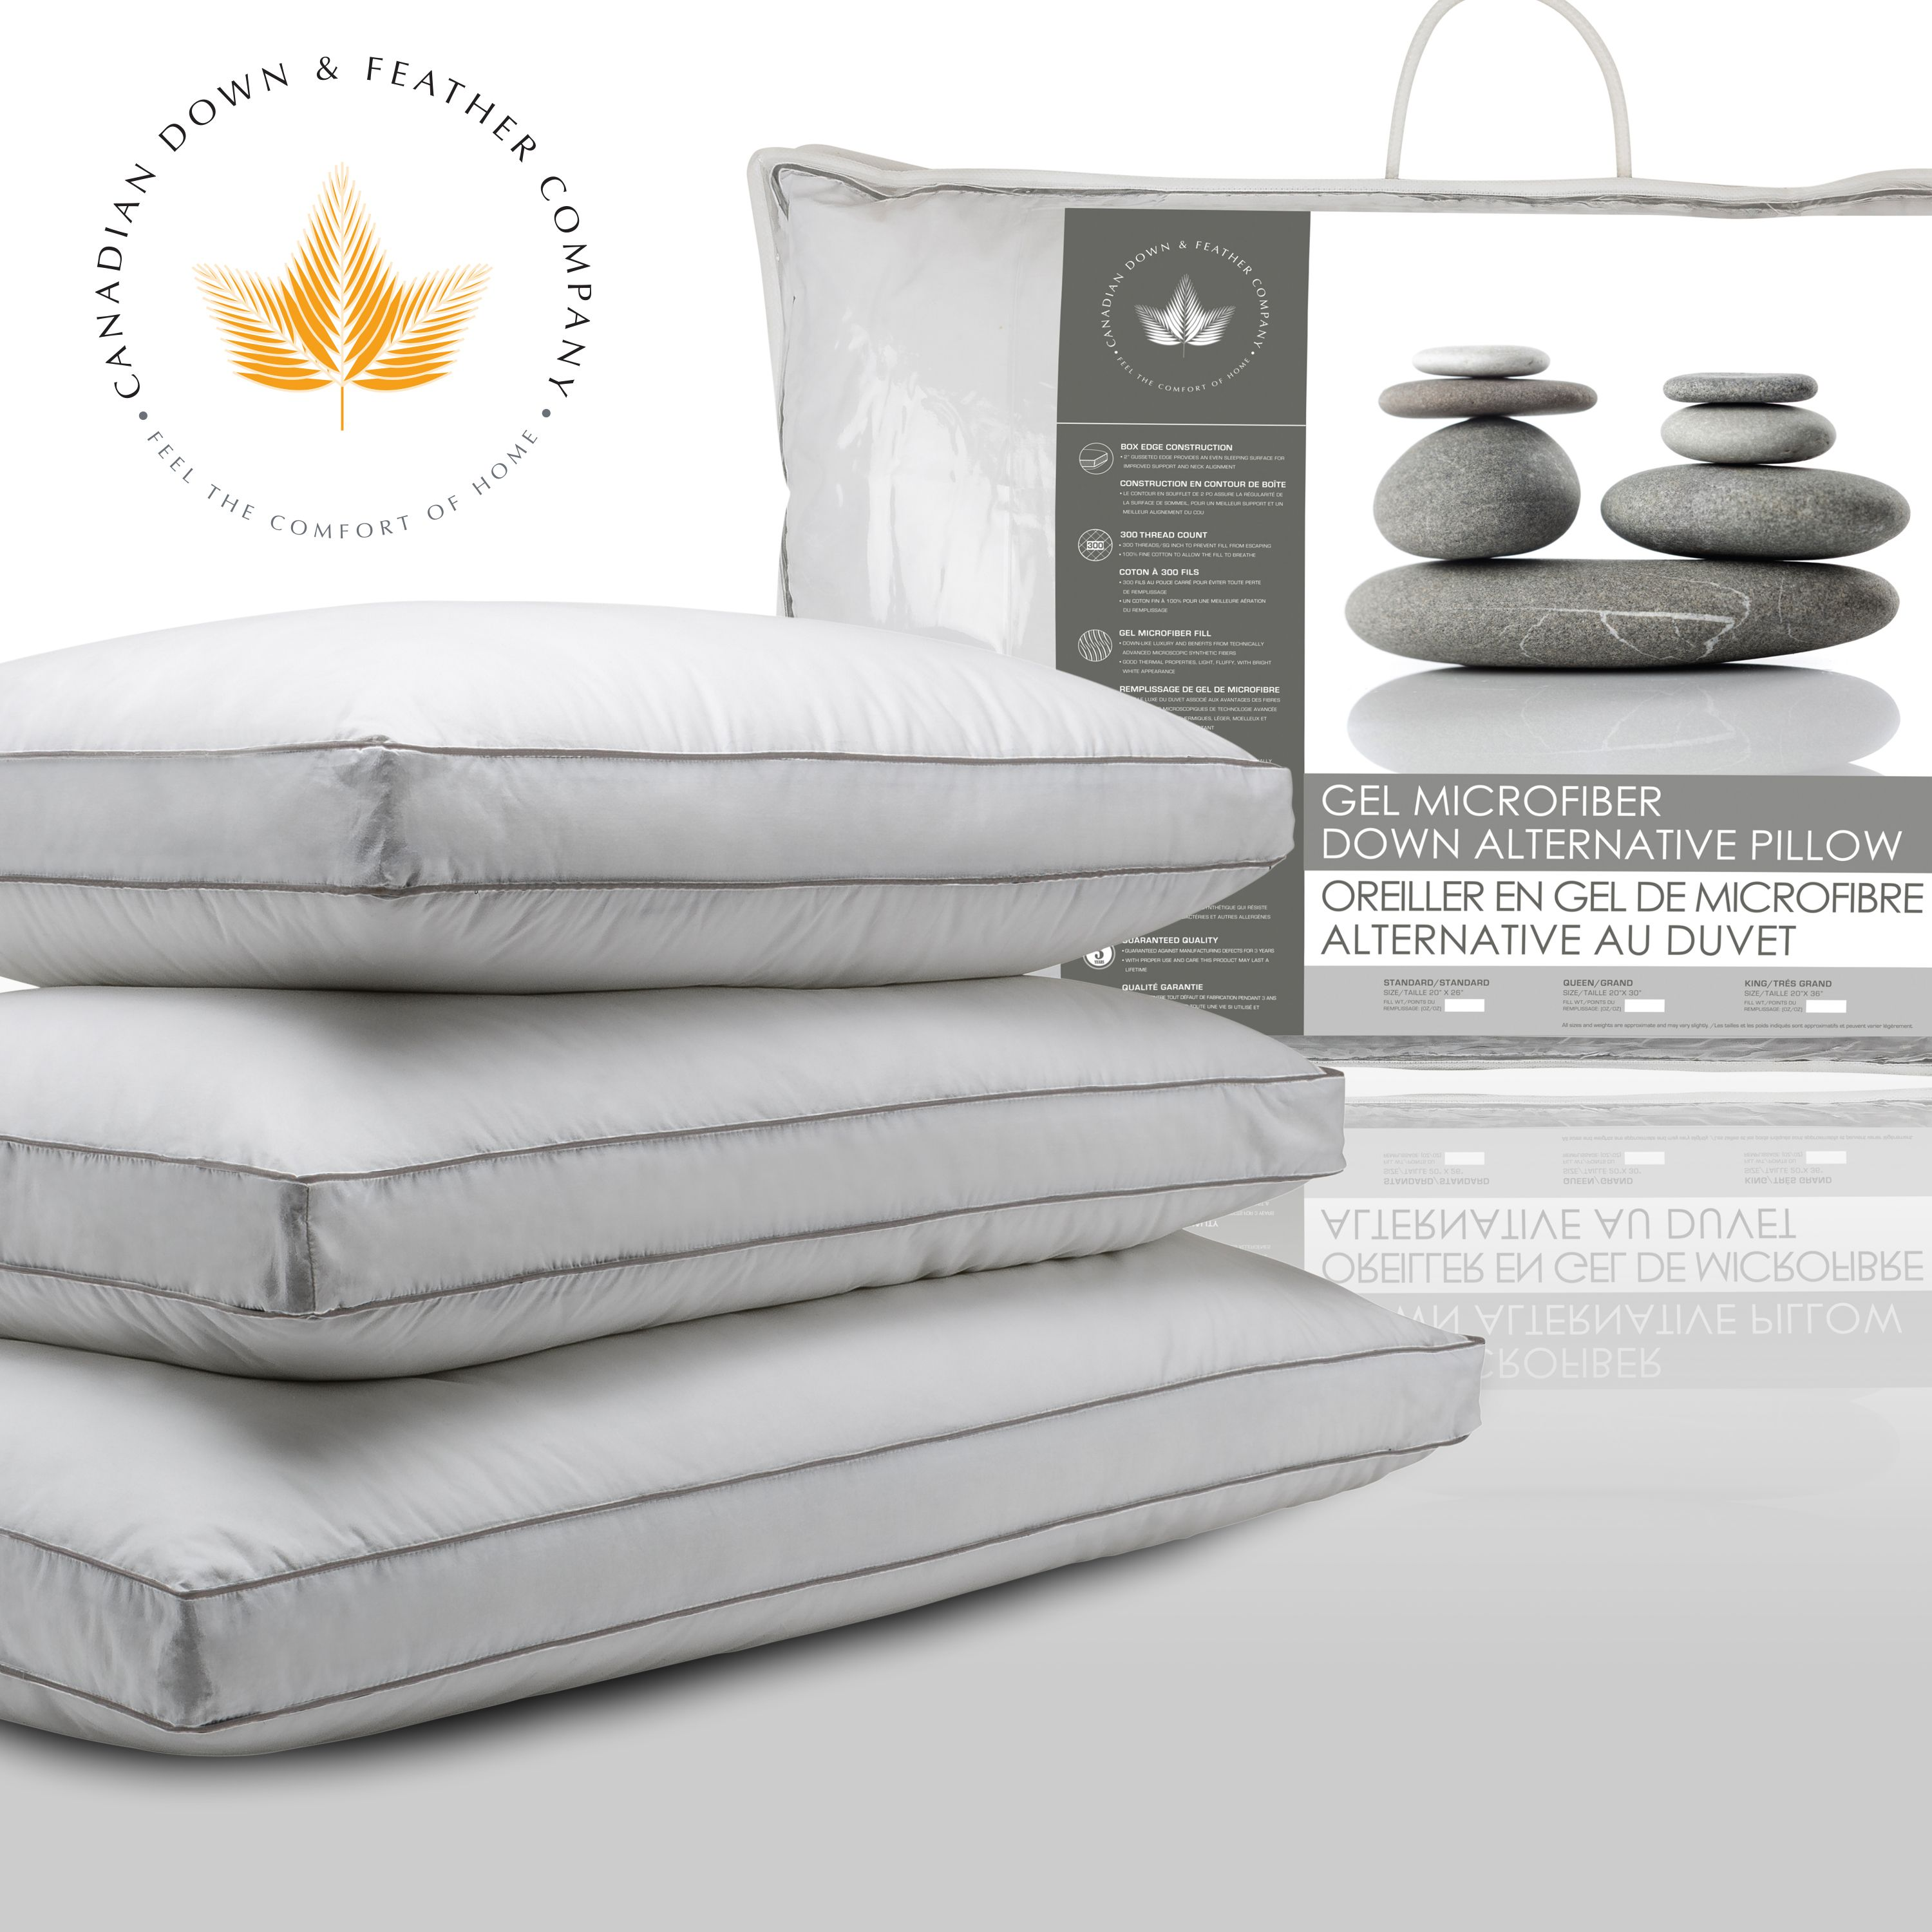 Korea Local Brand Pressure Relief Cushions Health & Beauty